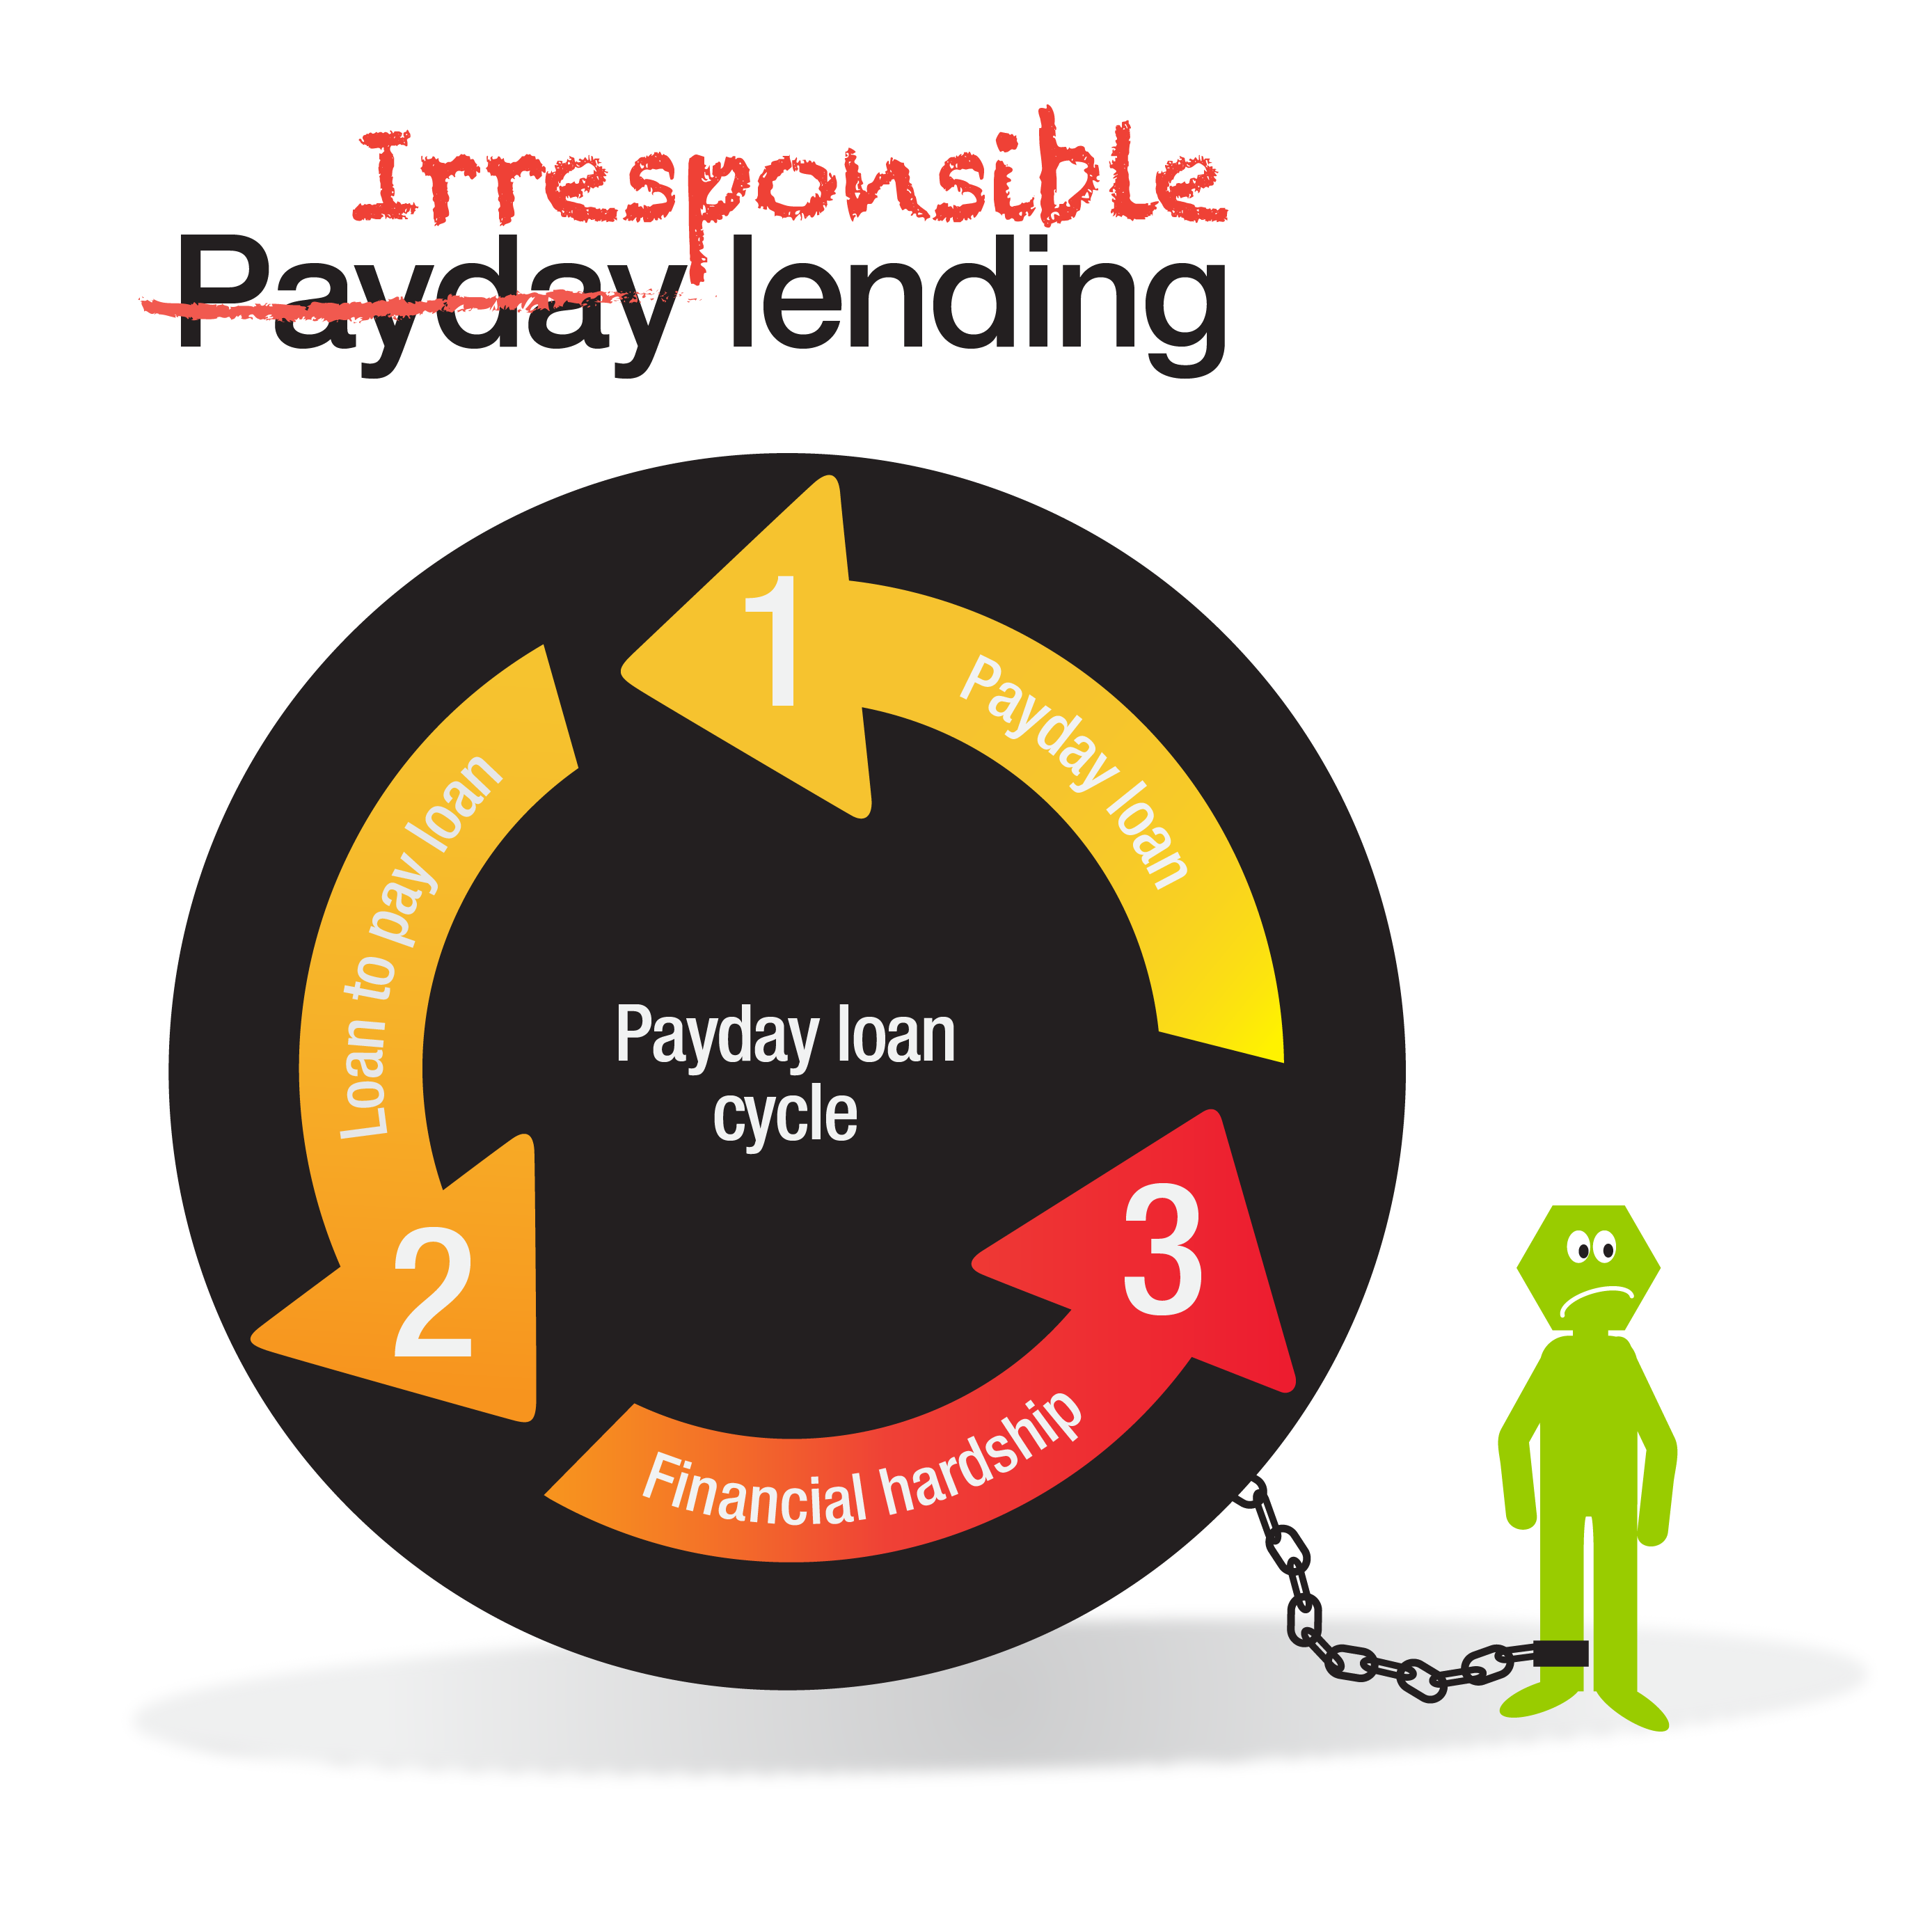 https://consumeraction.org.au/wp-content/uploads/2013/07/Consumer-Action-half-payday-lending-infographic.png